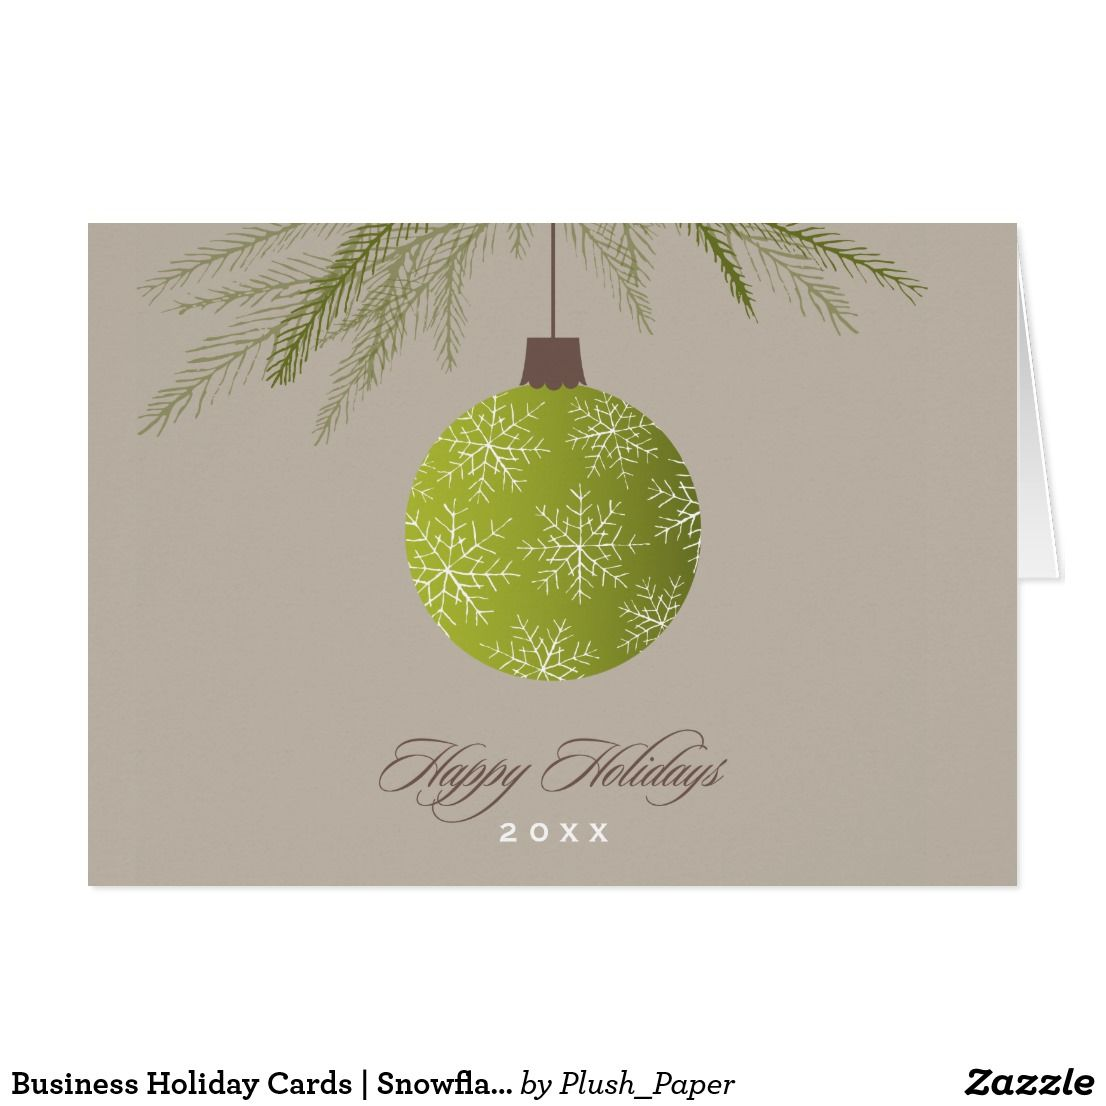 Business Holiday Cards | Snowflake Ornament Design | Business ...